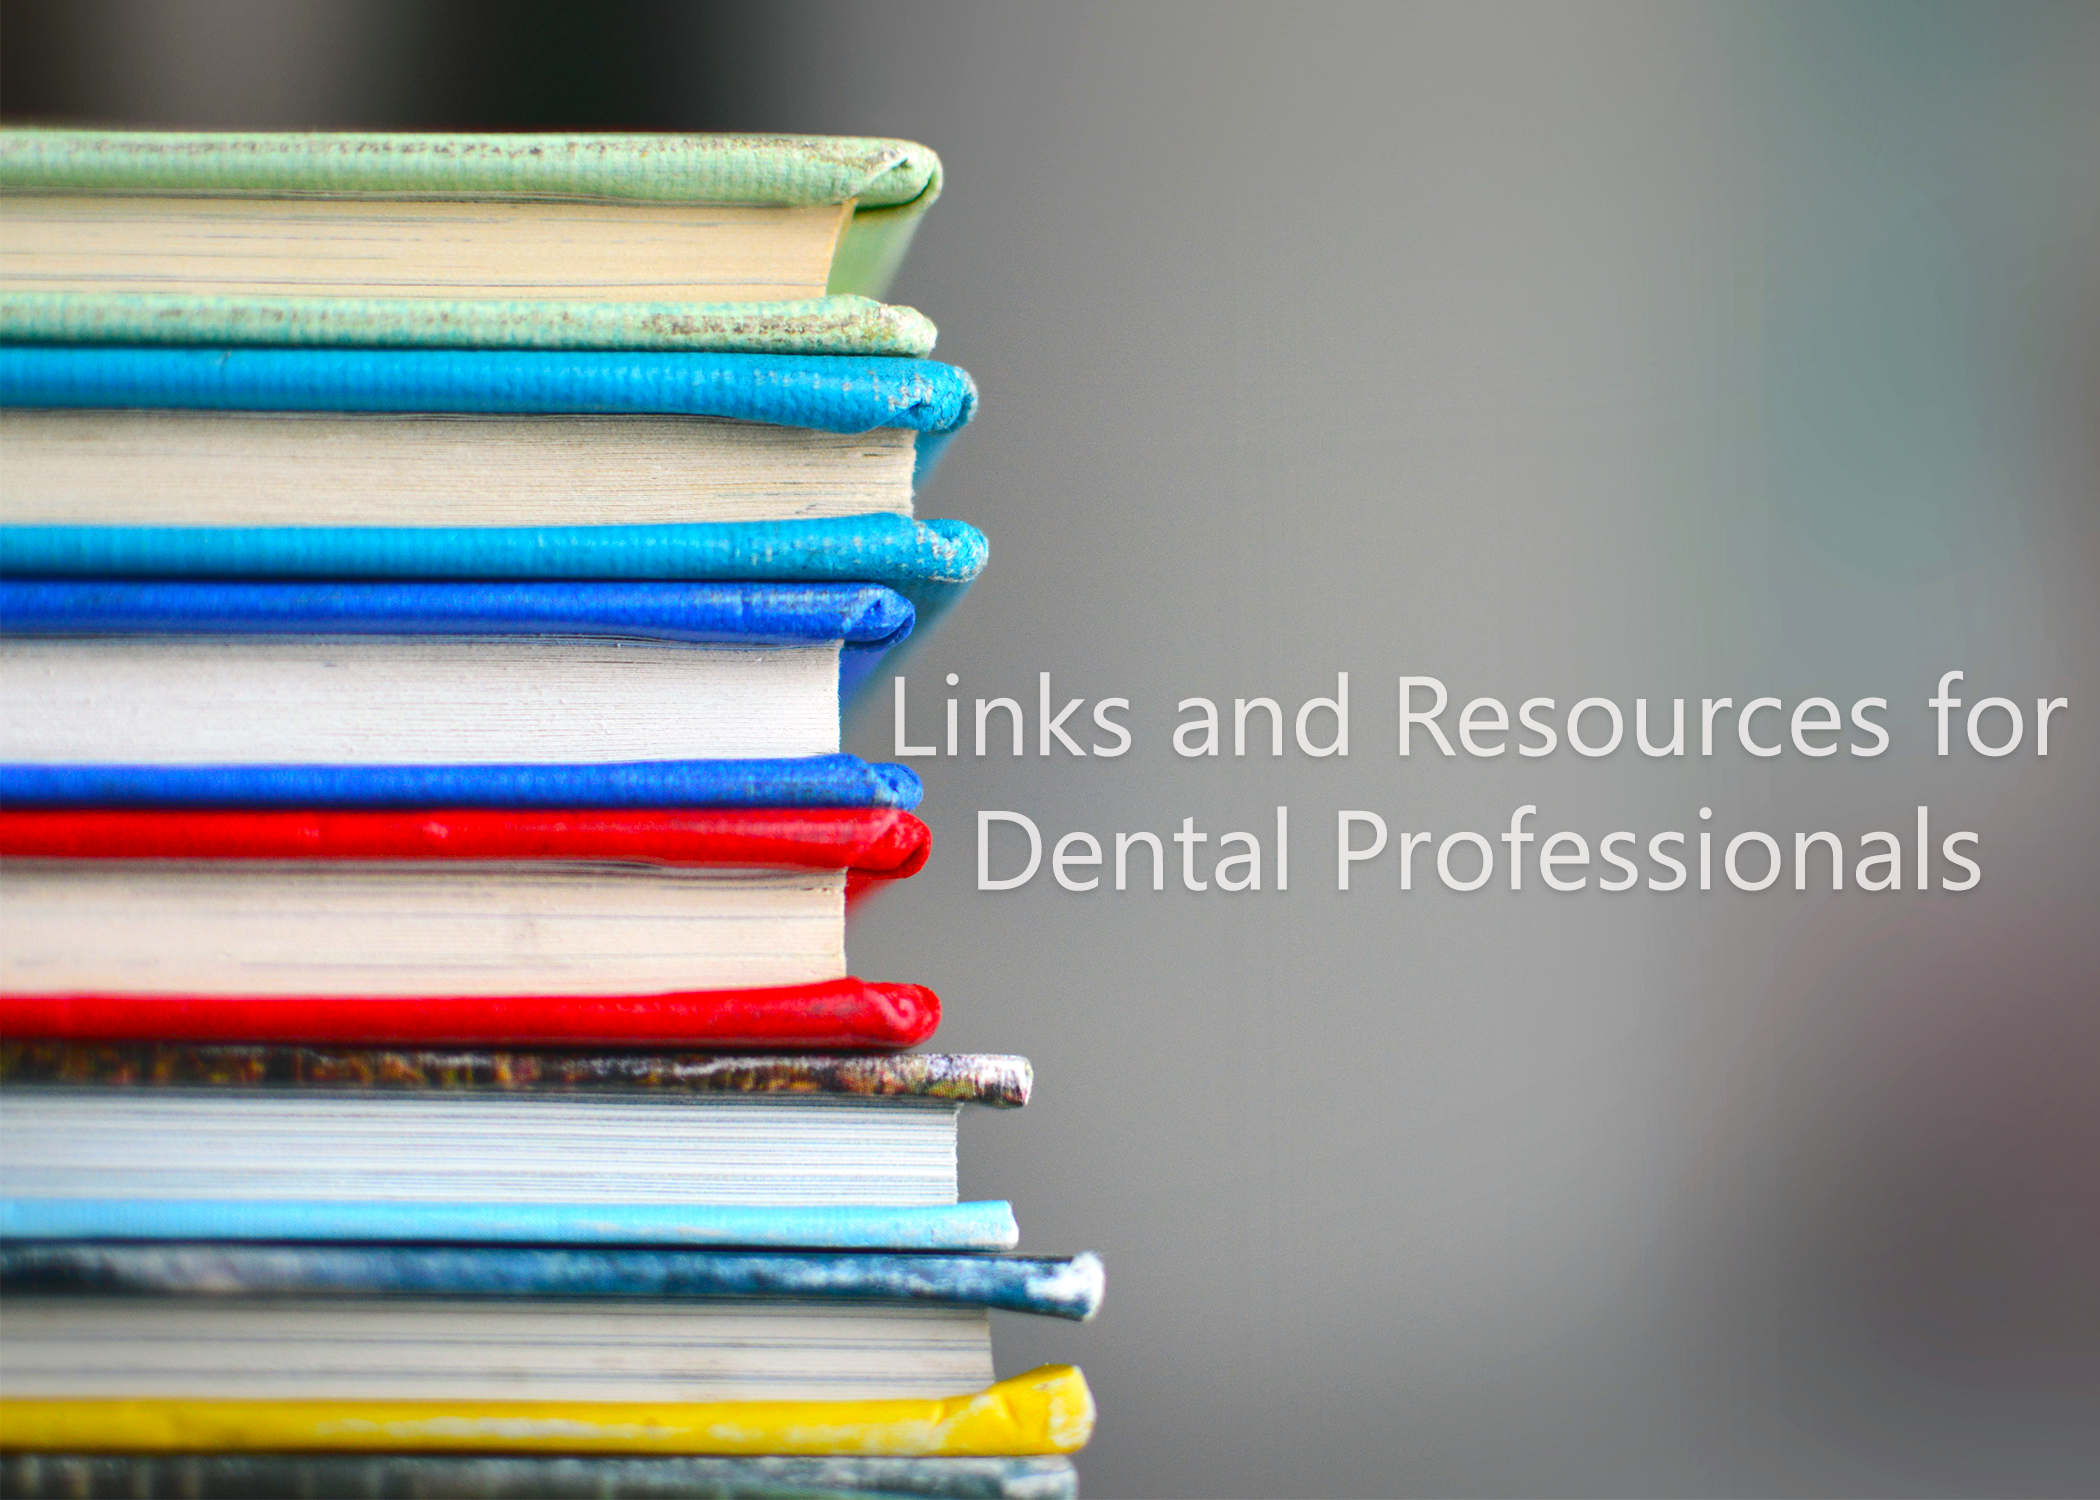 Practice Precautions and Additional Resources for Dentists: COVID-19